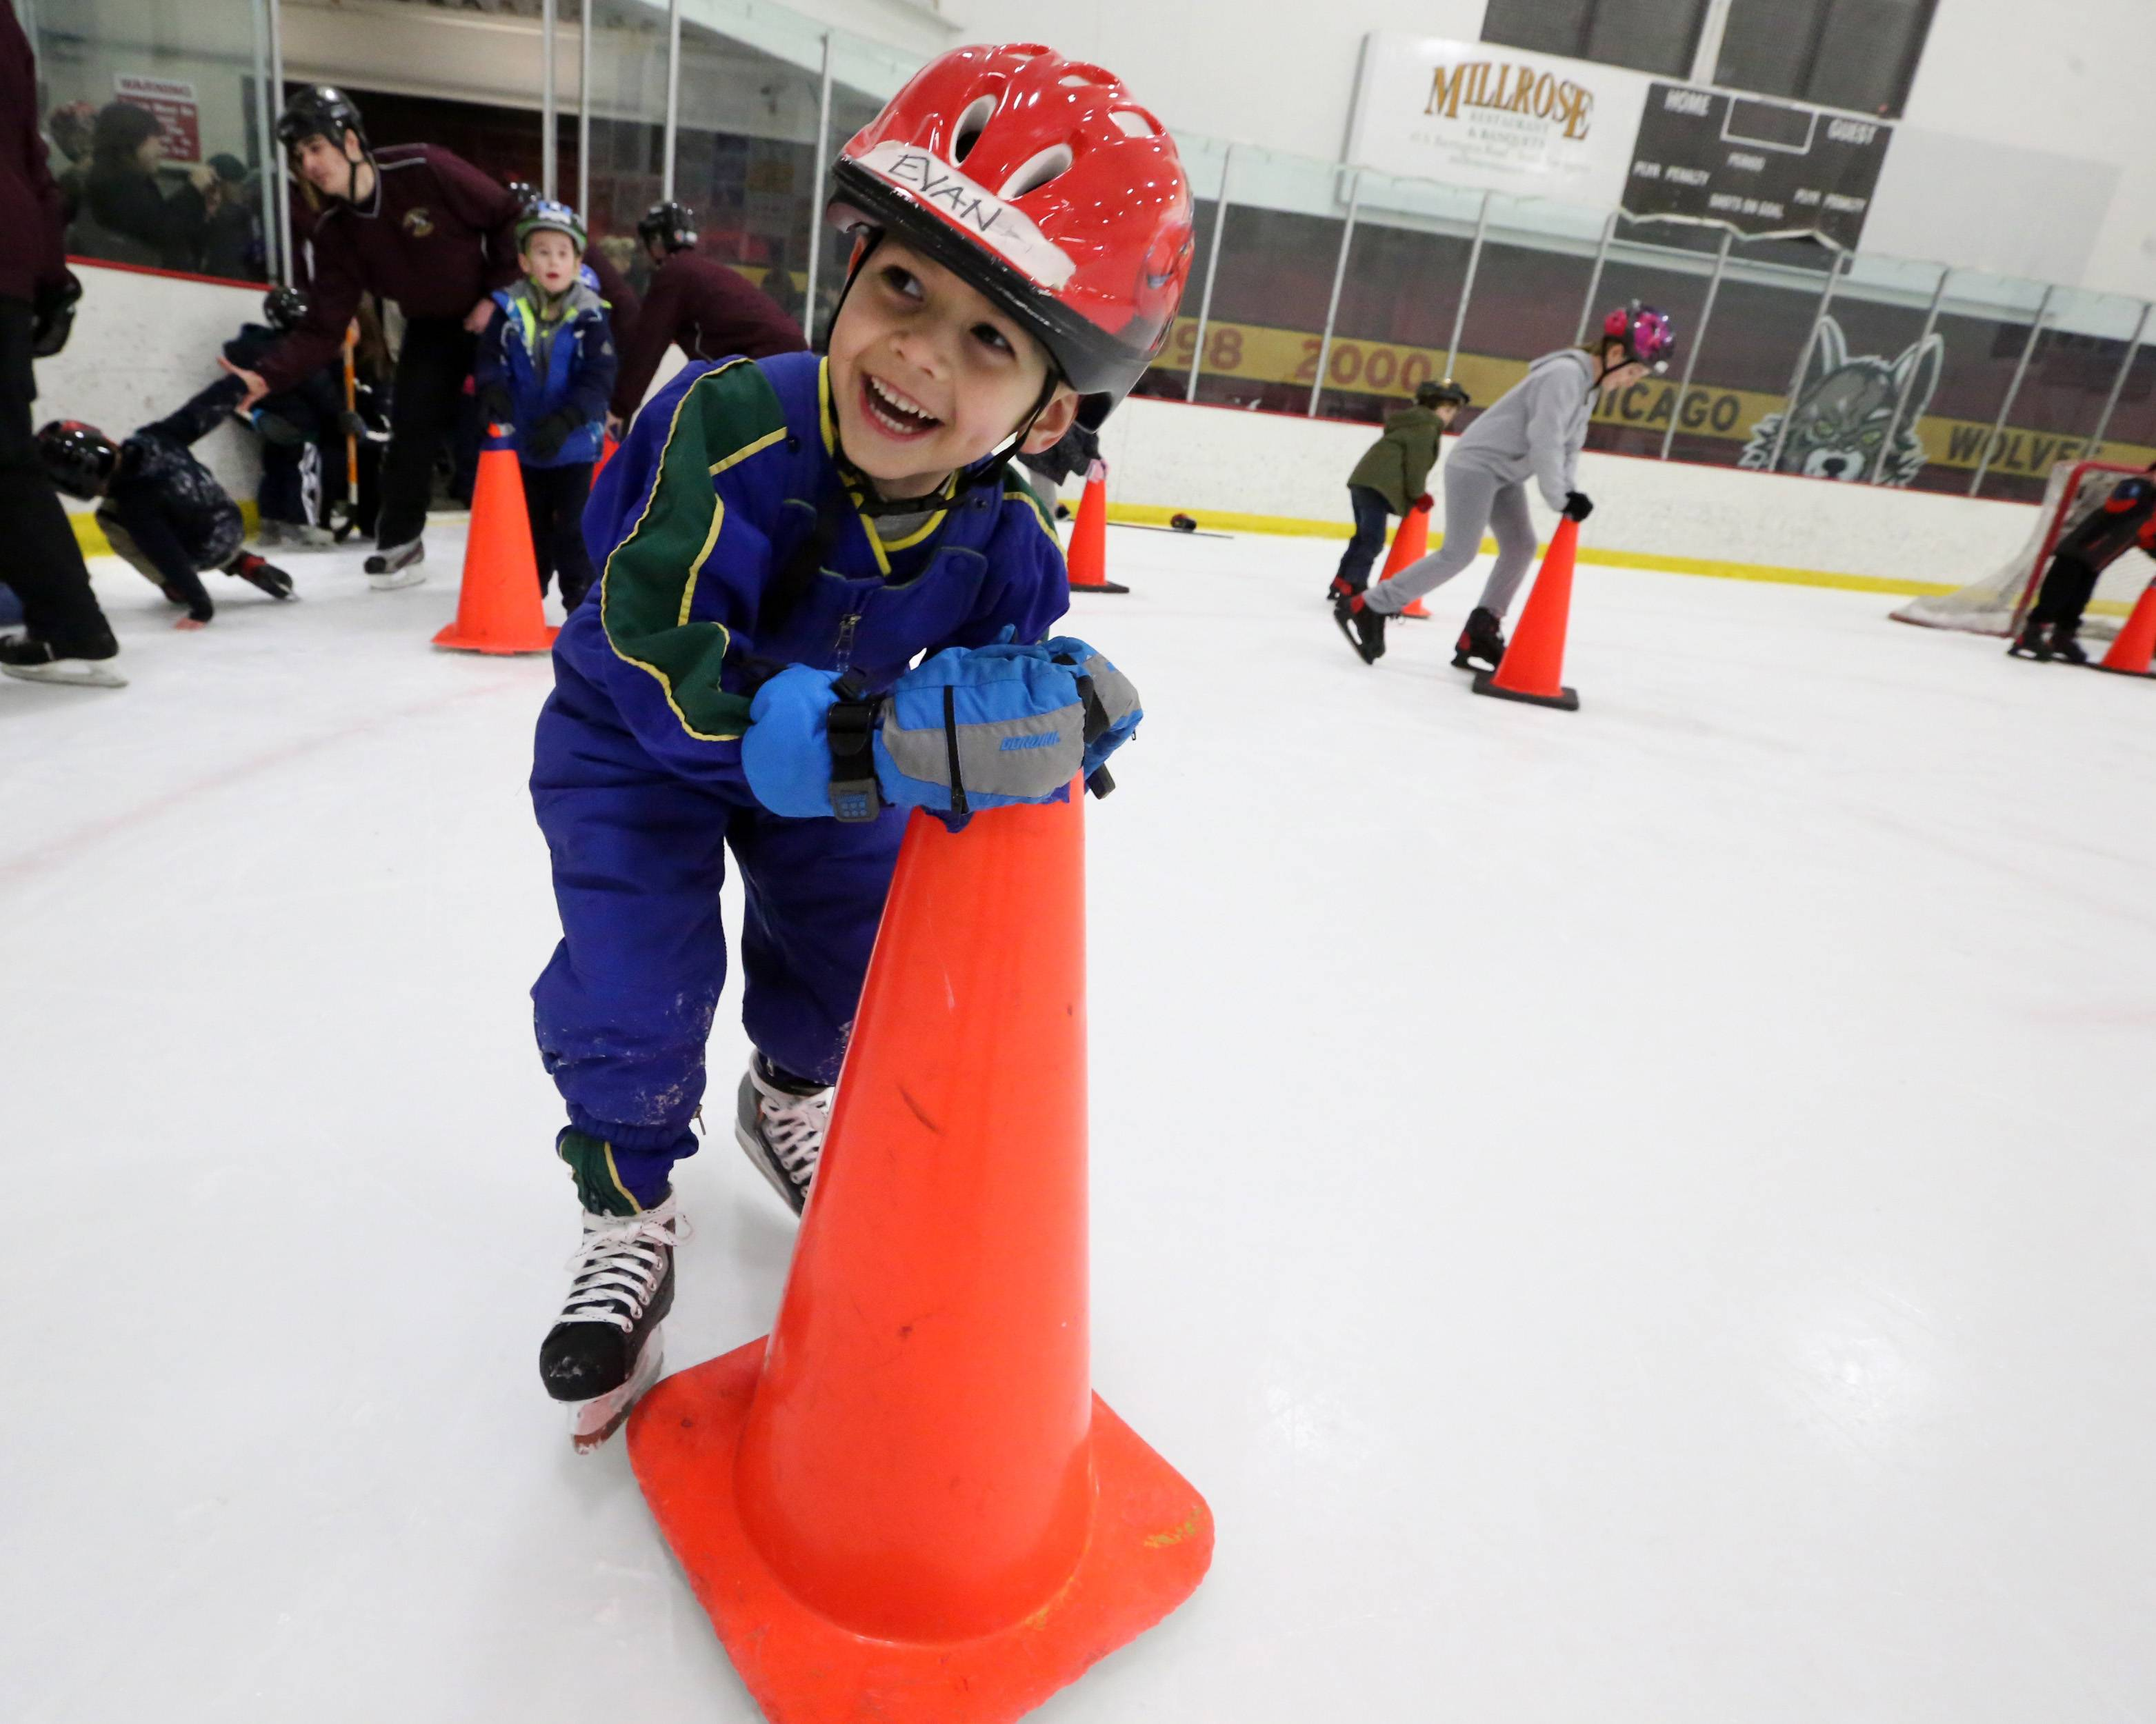 George LeClaire/gleclaire@dailyherald.comEvan Sher, 5, of Hanover Park, learns to stay up on his skates using an orange traffic cone at USA Hockey's annual Try Hockey For Free event at the Triphahn Center on Saturday in Hoffman Estates.